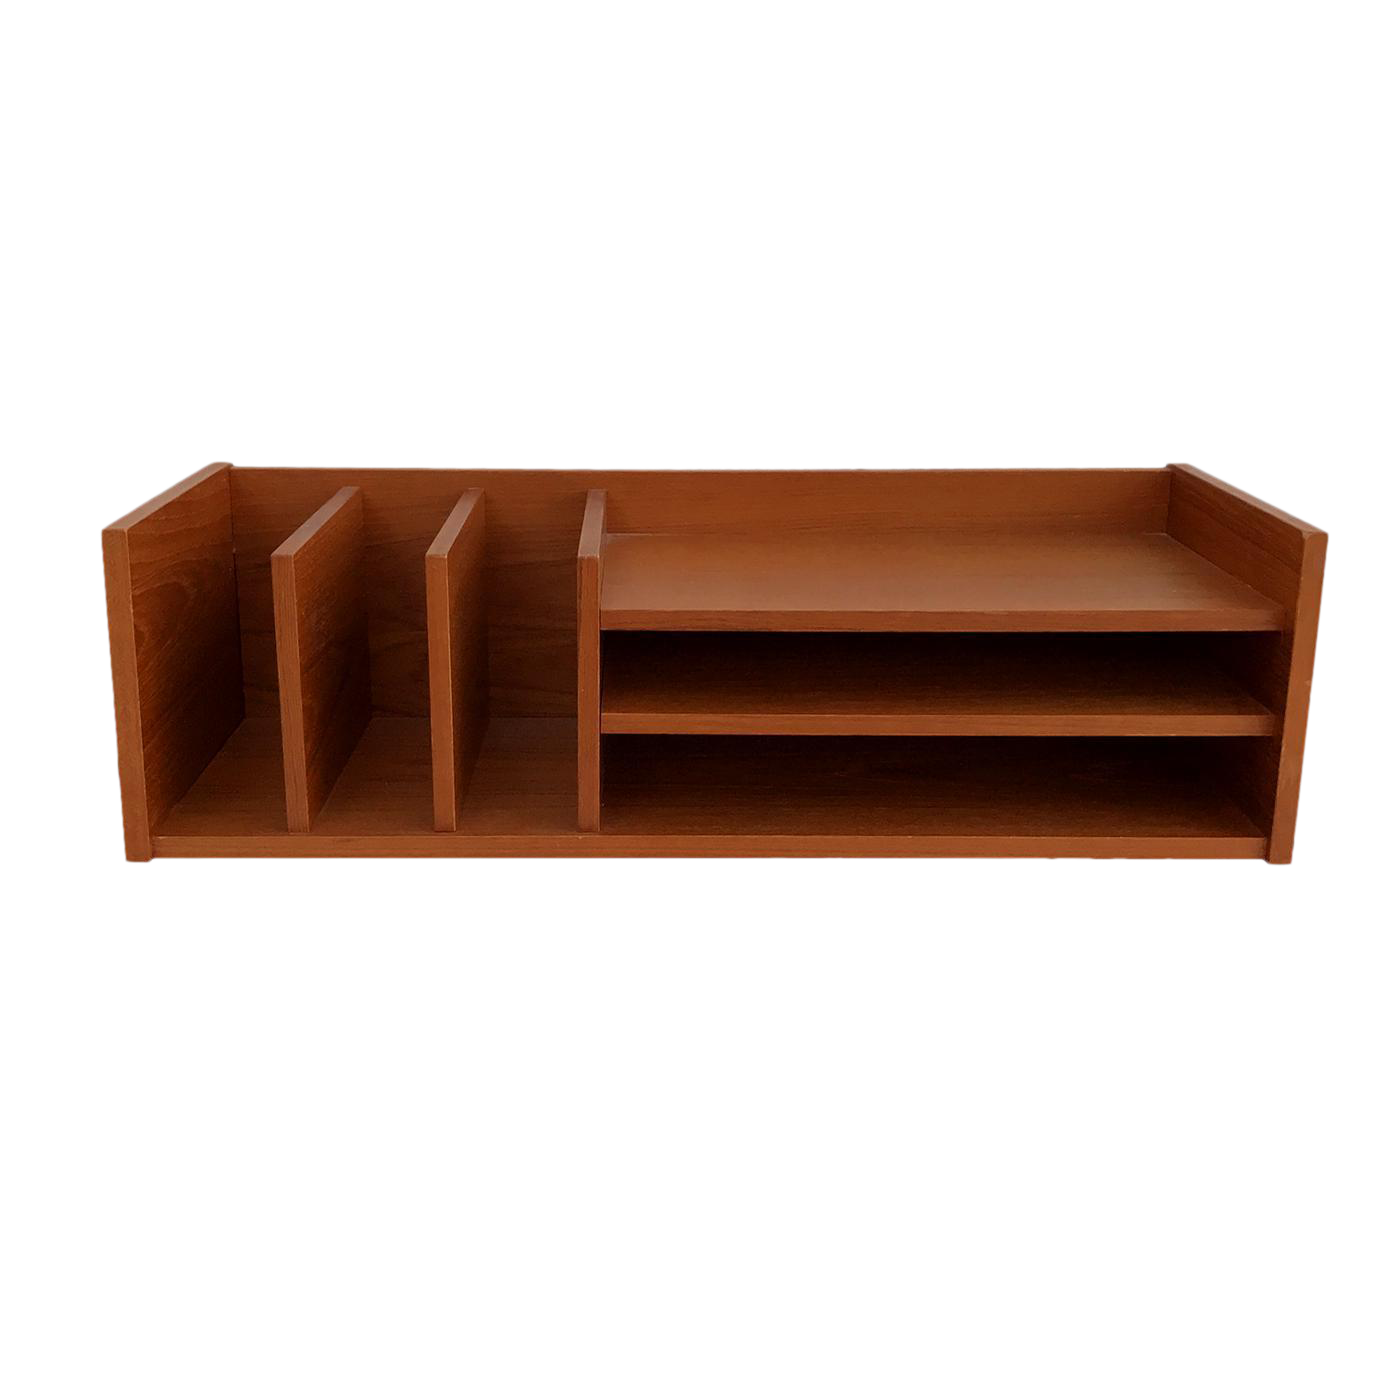 Danish Modern Teak Desk Organizer By Georg Petersen Mid